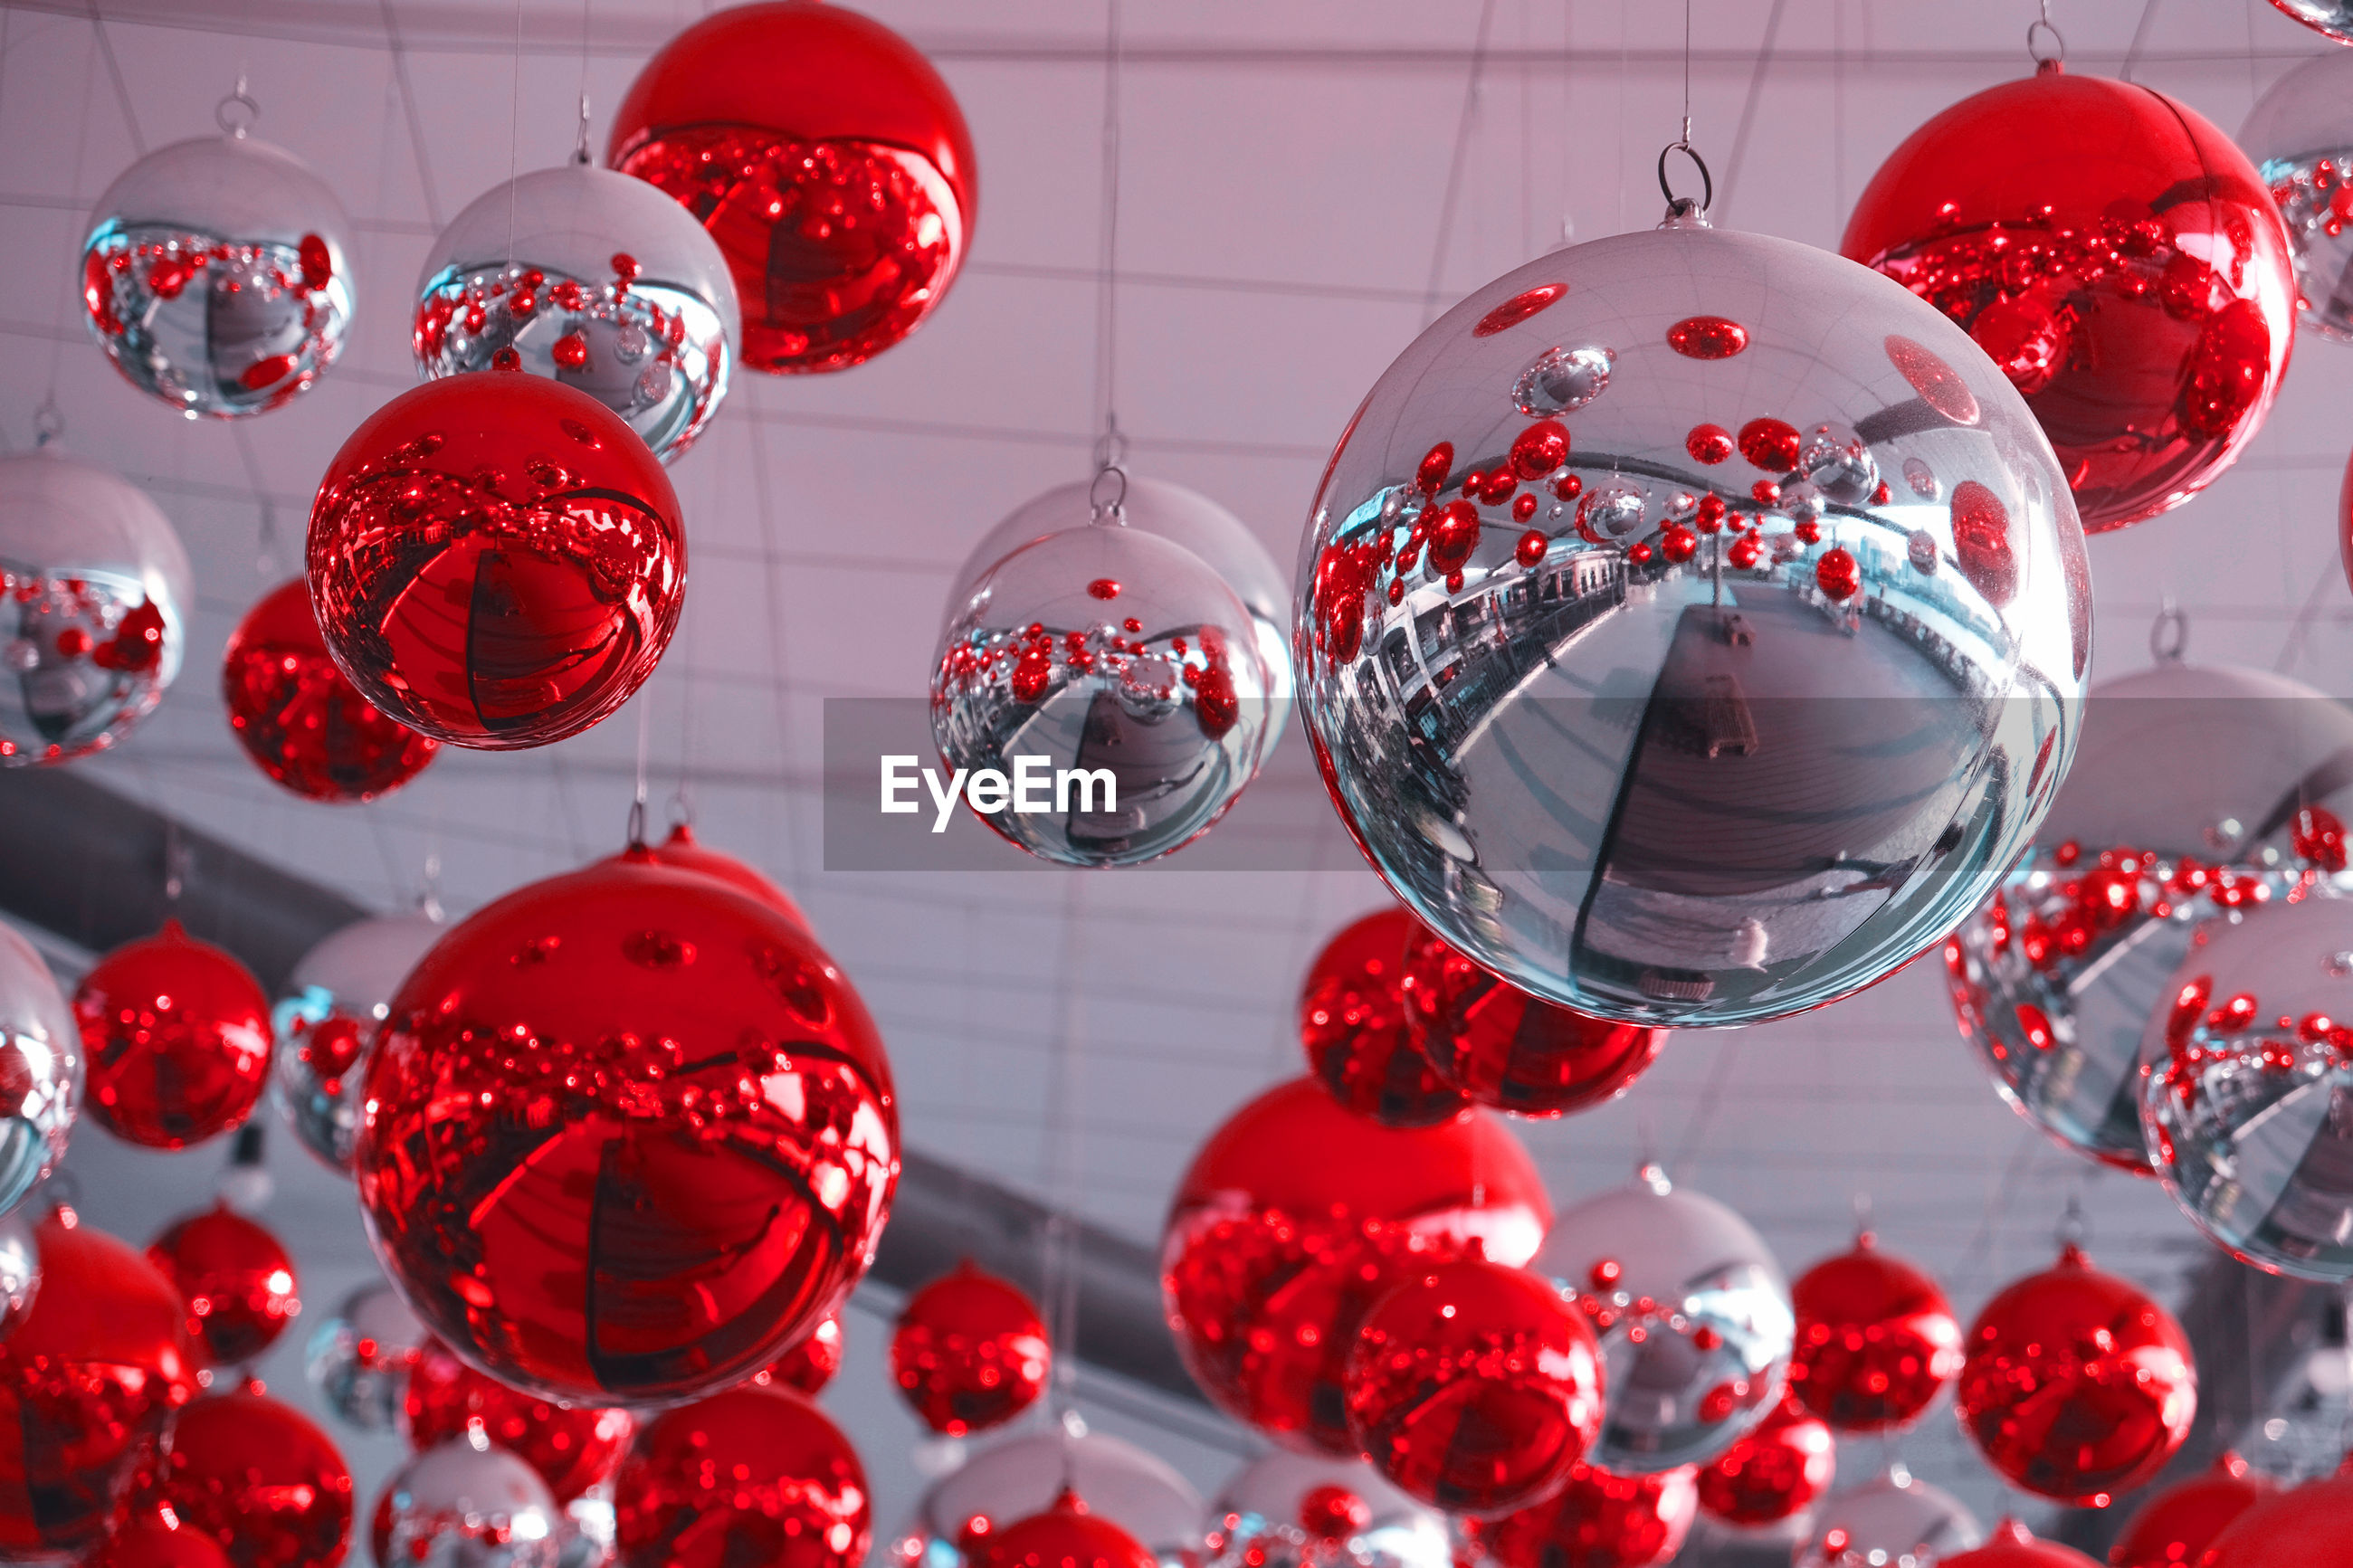 Low angle view of christmas ornaments